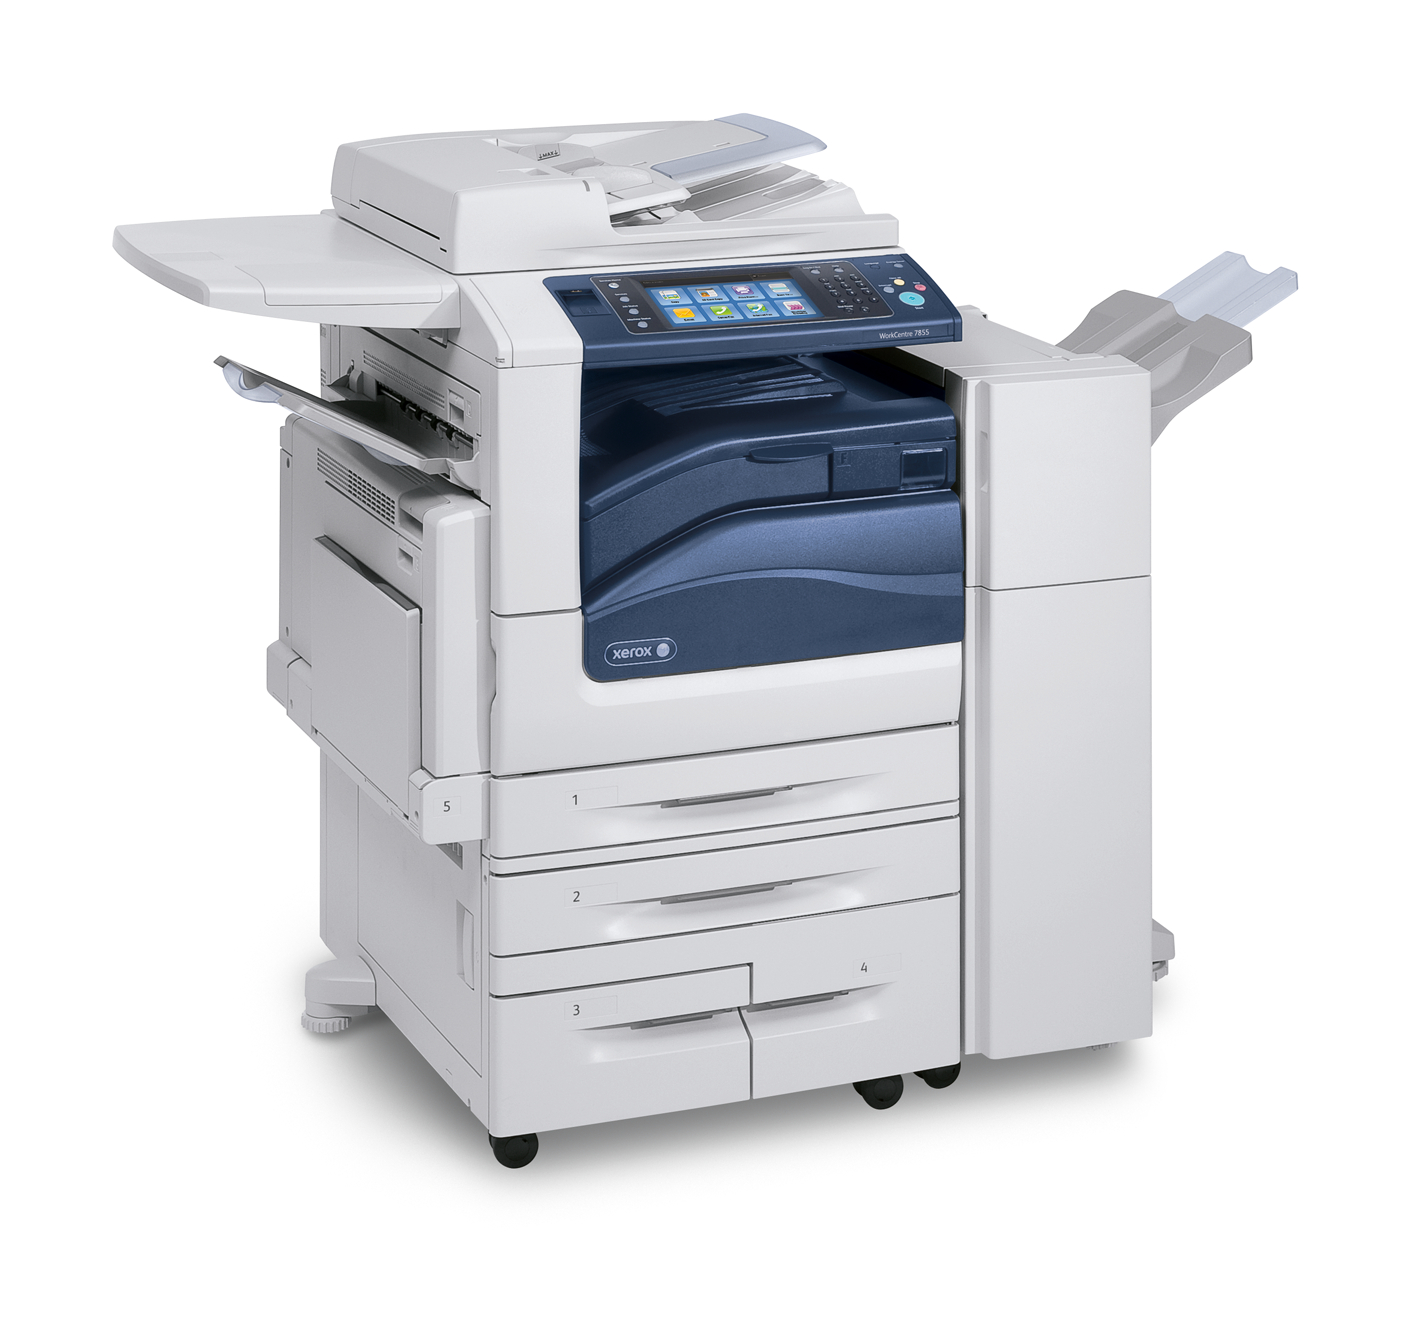 7845 xerox ALL IN ONE COPY MACHINE SALES 53172